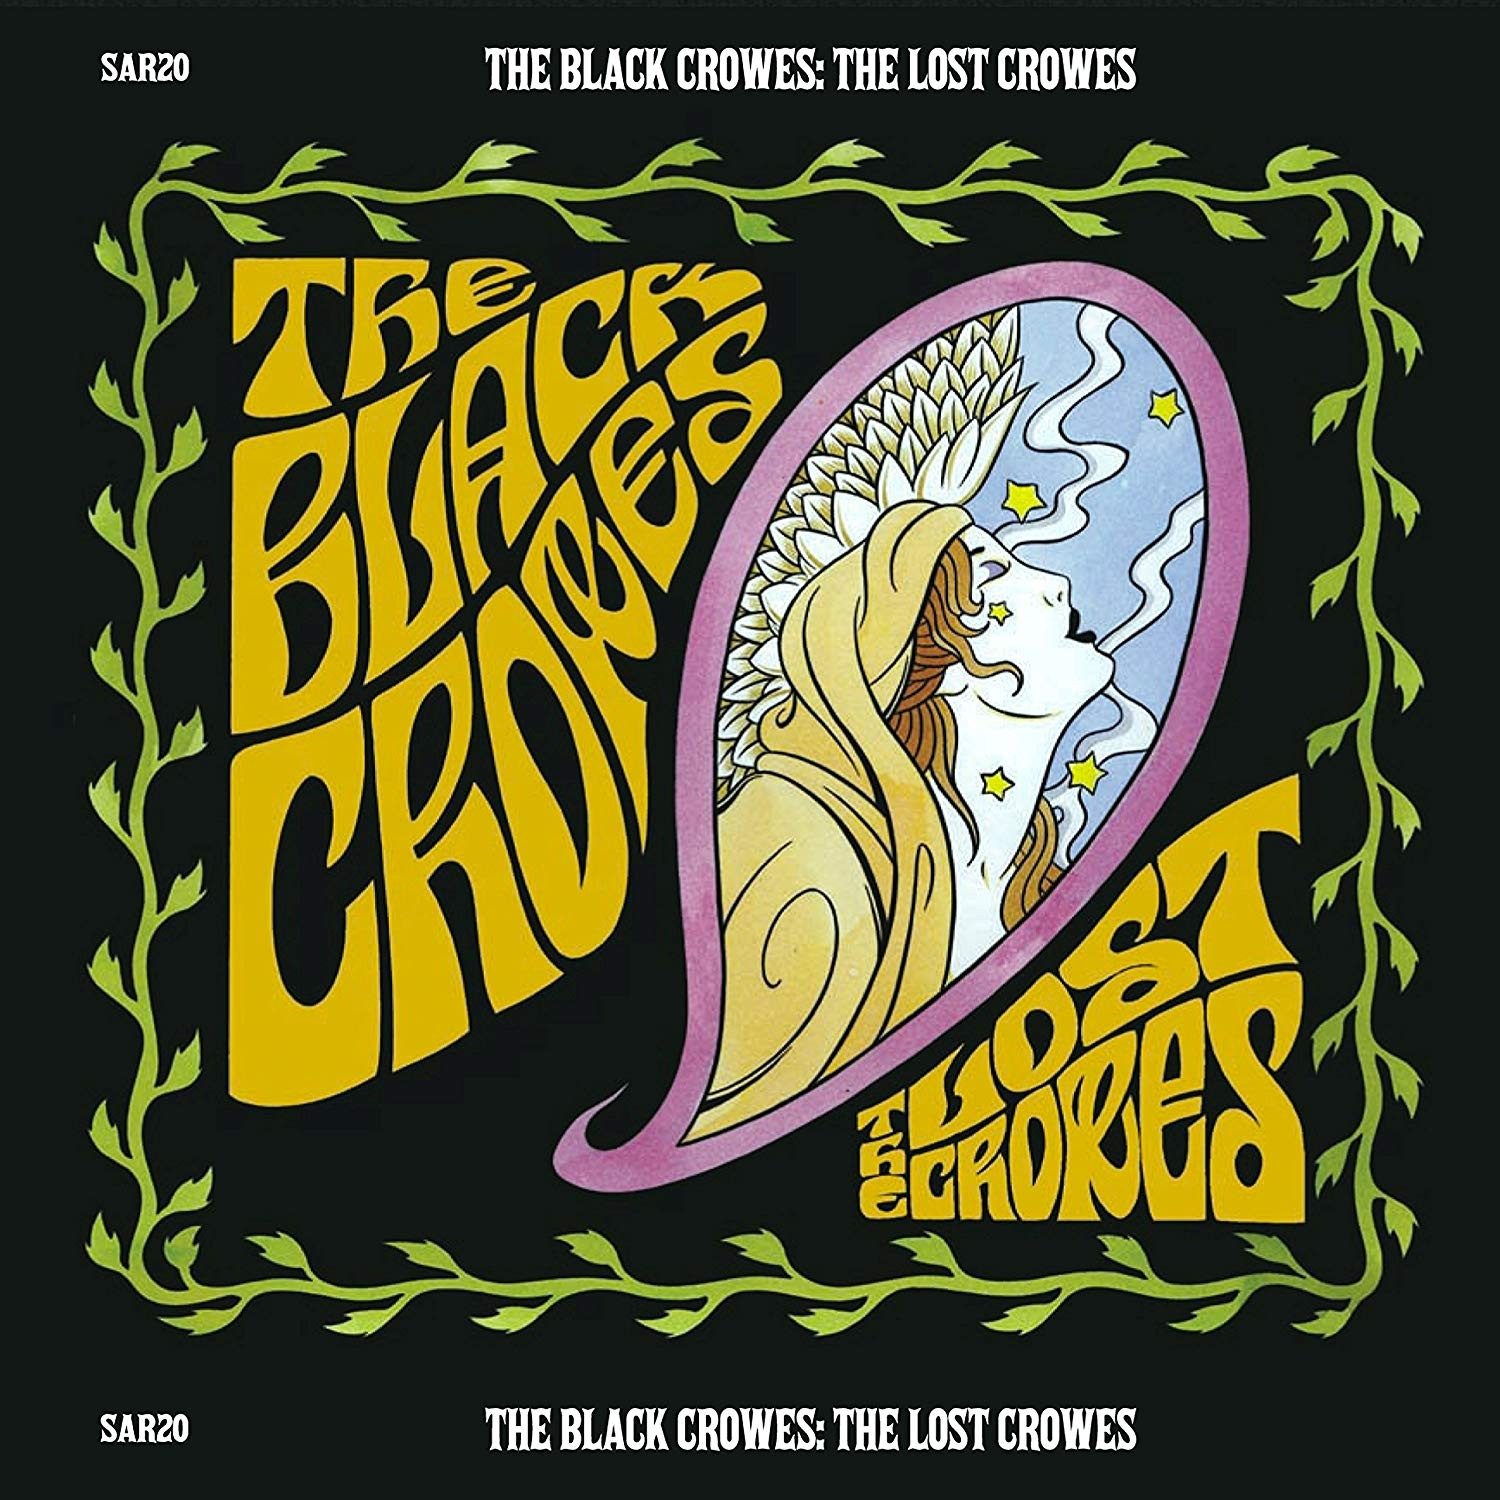 The Black Crowes - Lost Crowes (Colored) 2XLP Vinyl